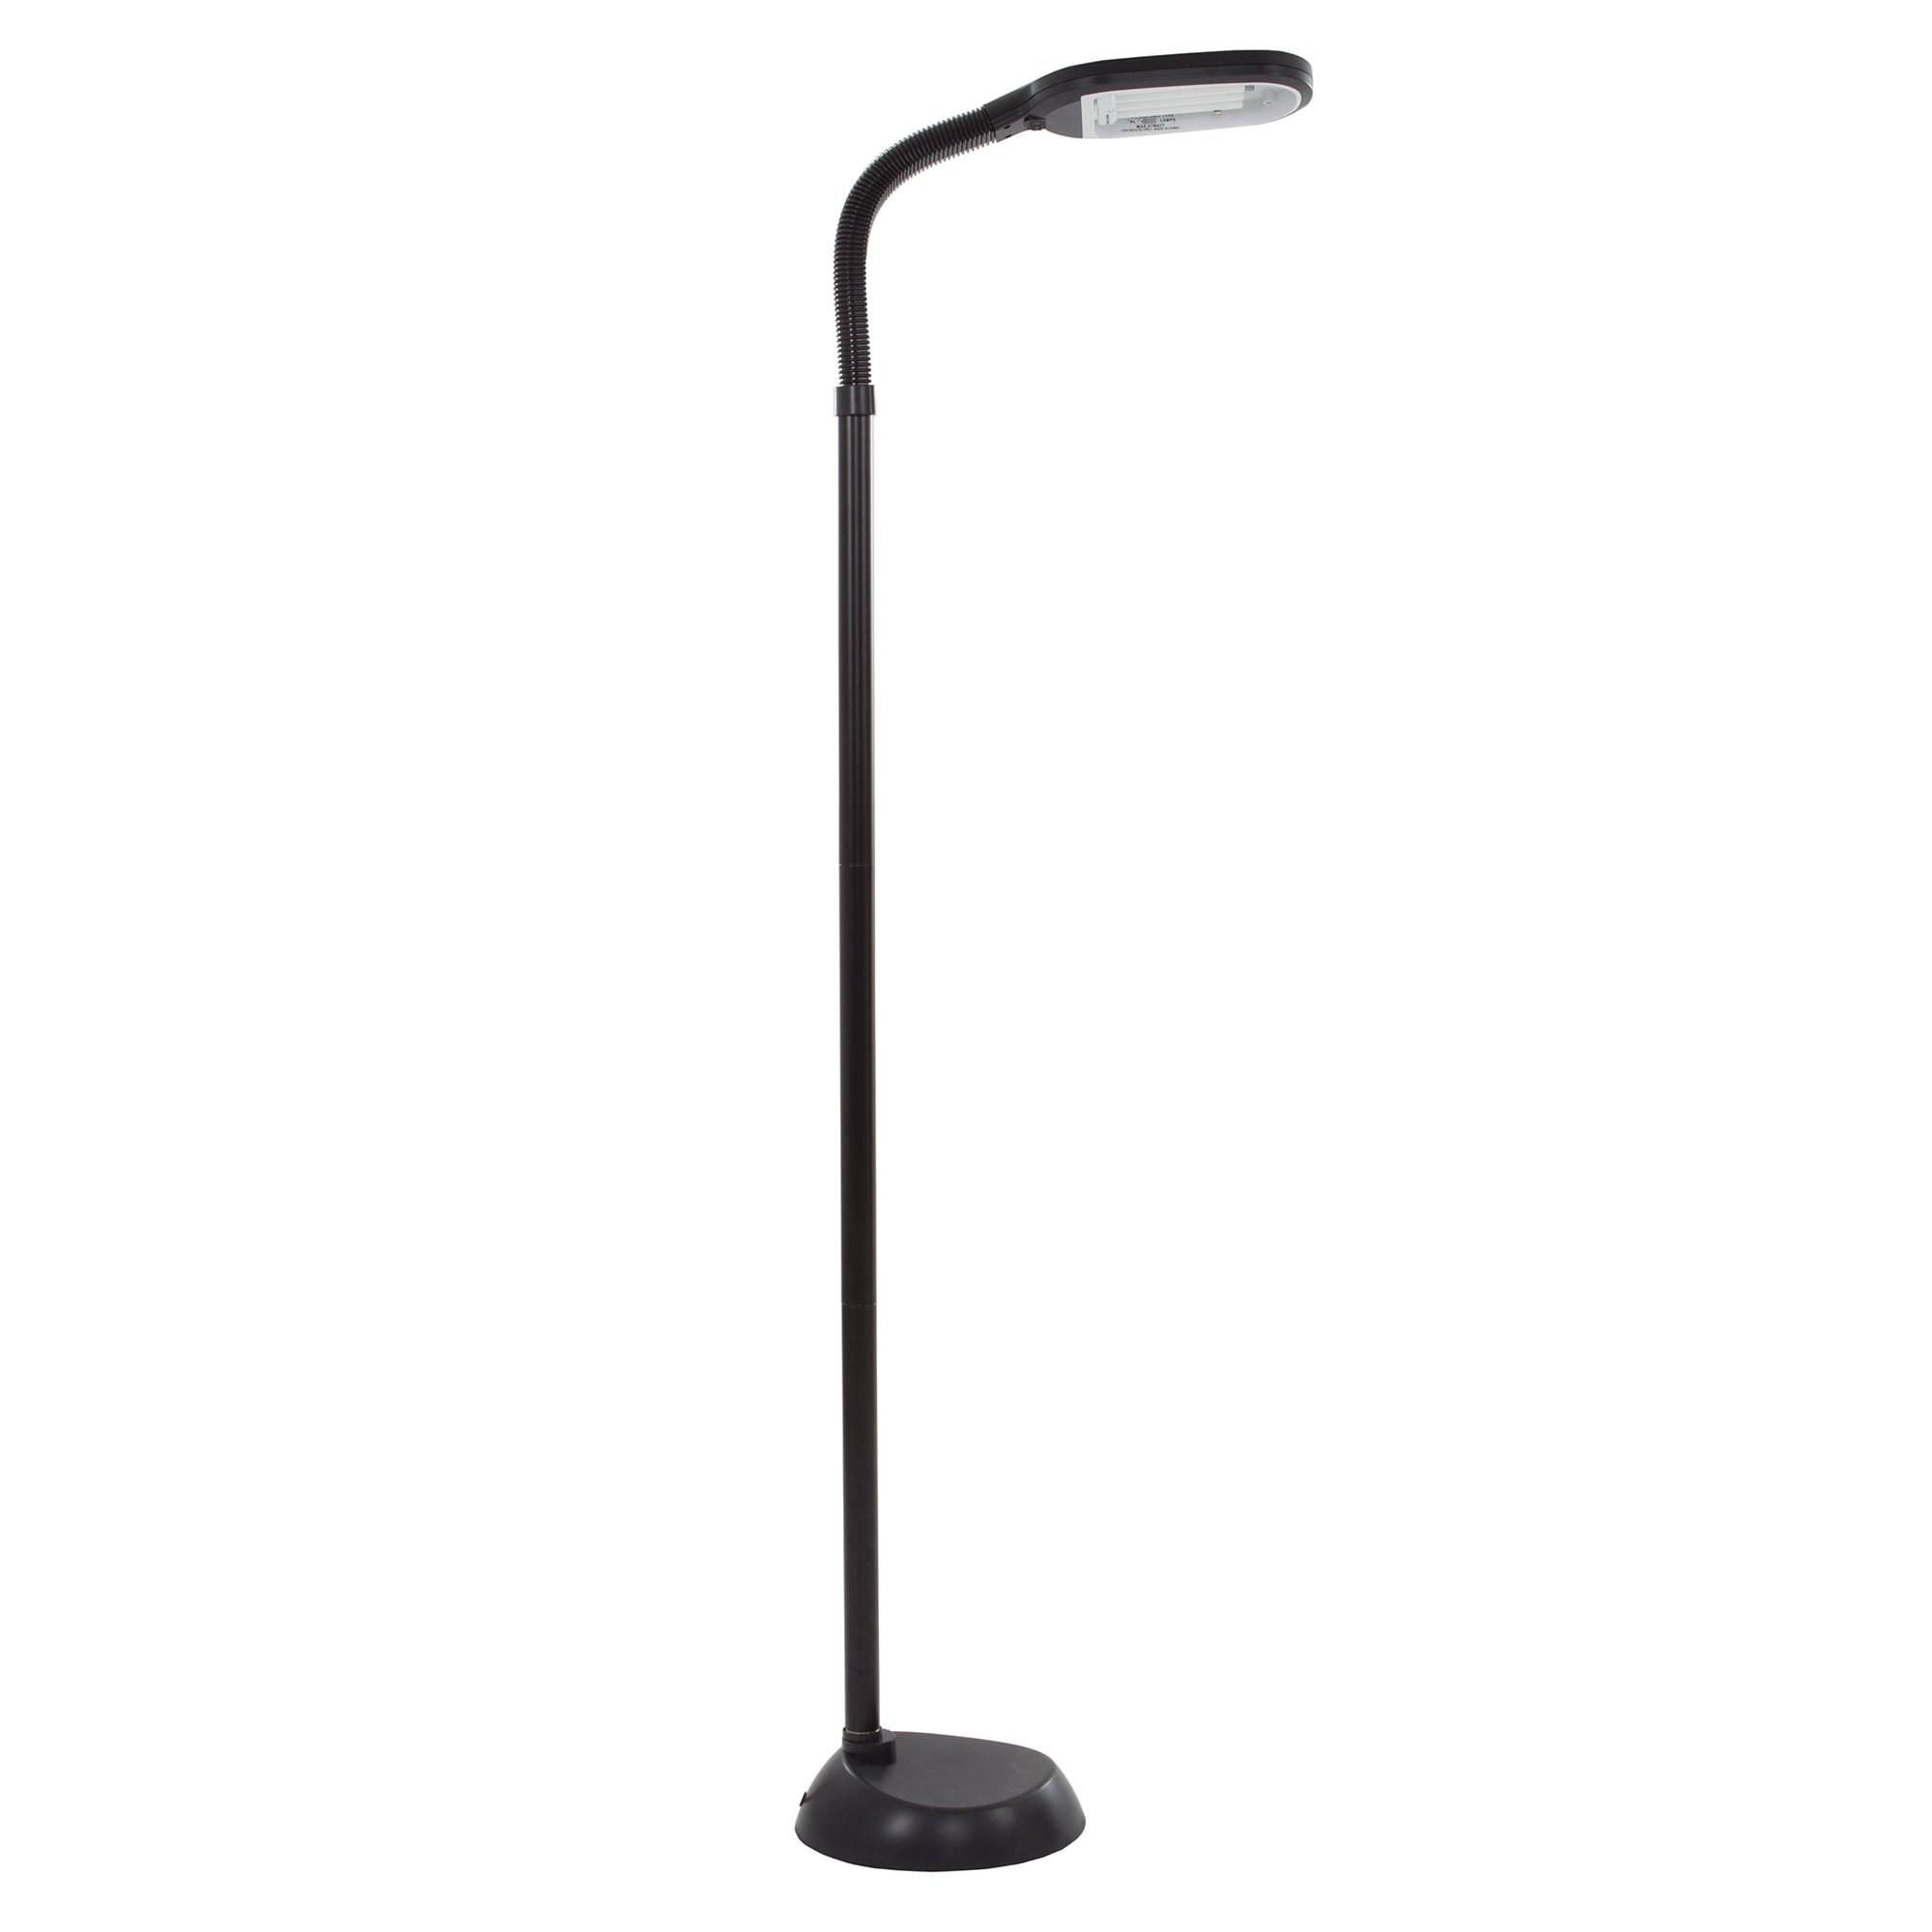 Natural Full Spectrum Sunlight Therapy Reading and Crafting Floor Lamp Lavish Home (Black, 6 Feet) - Adjustable Gooseneck